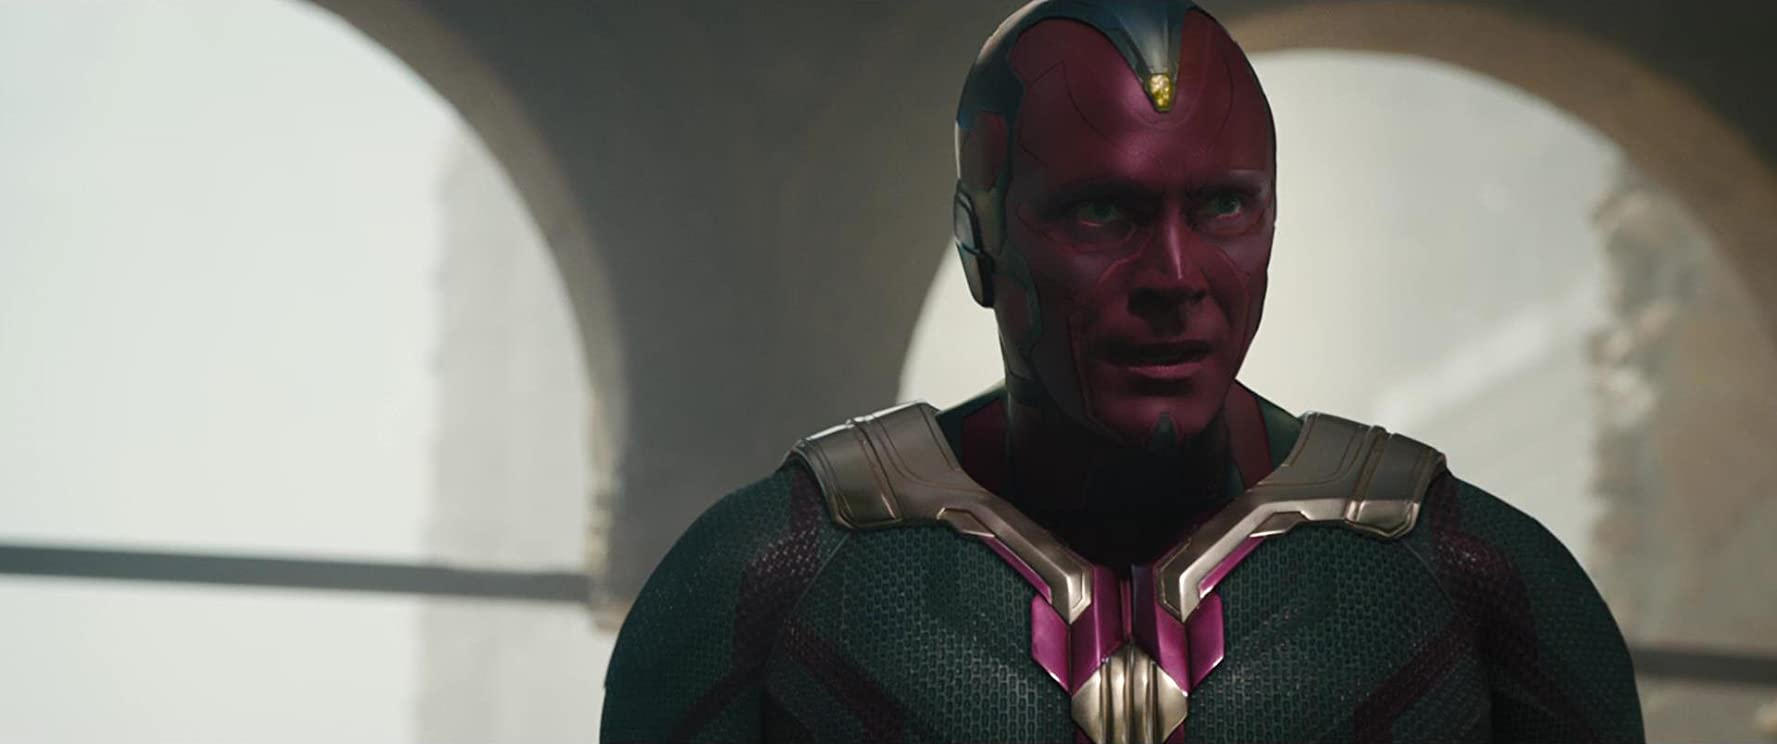 Whedon's ' Avengers: Age of Ultron' Ages Well - PopMatters